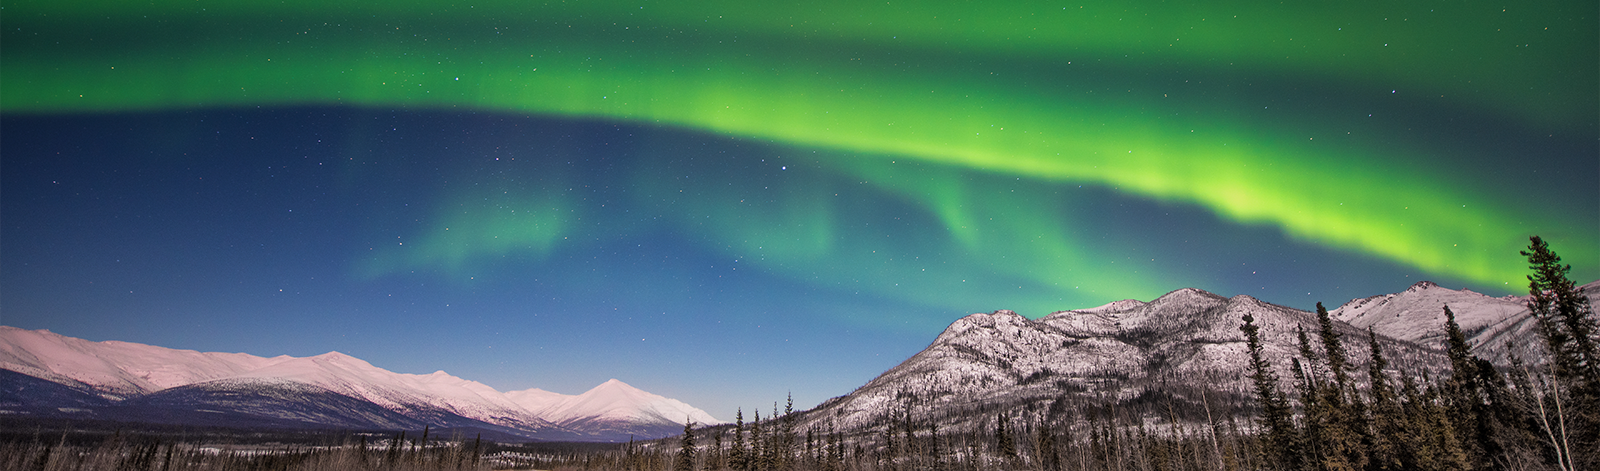 How to see Northern Lights in Alaska